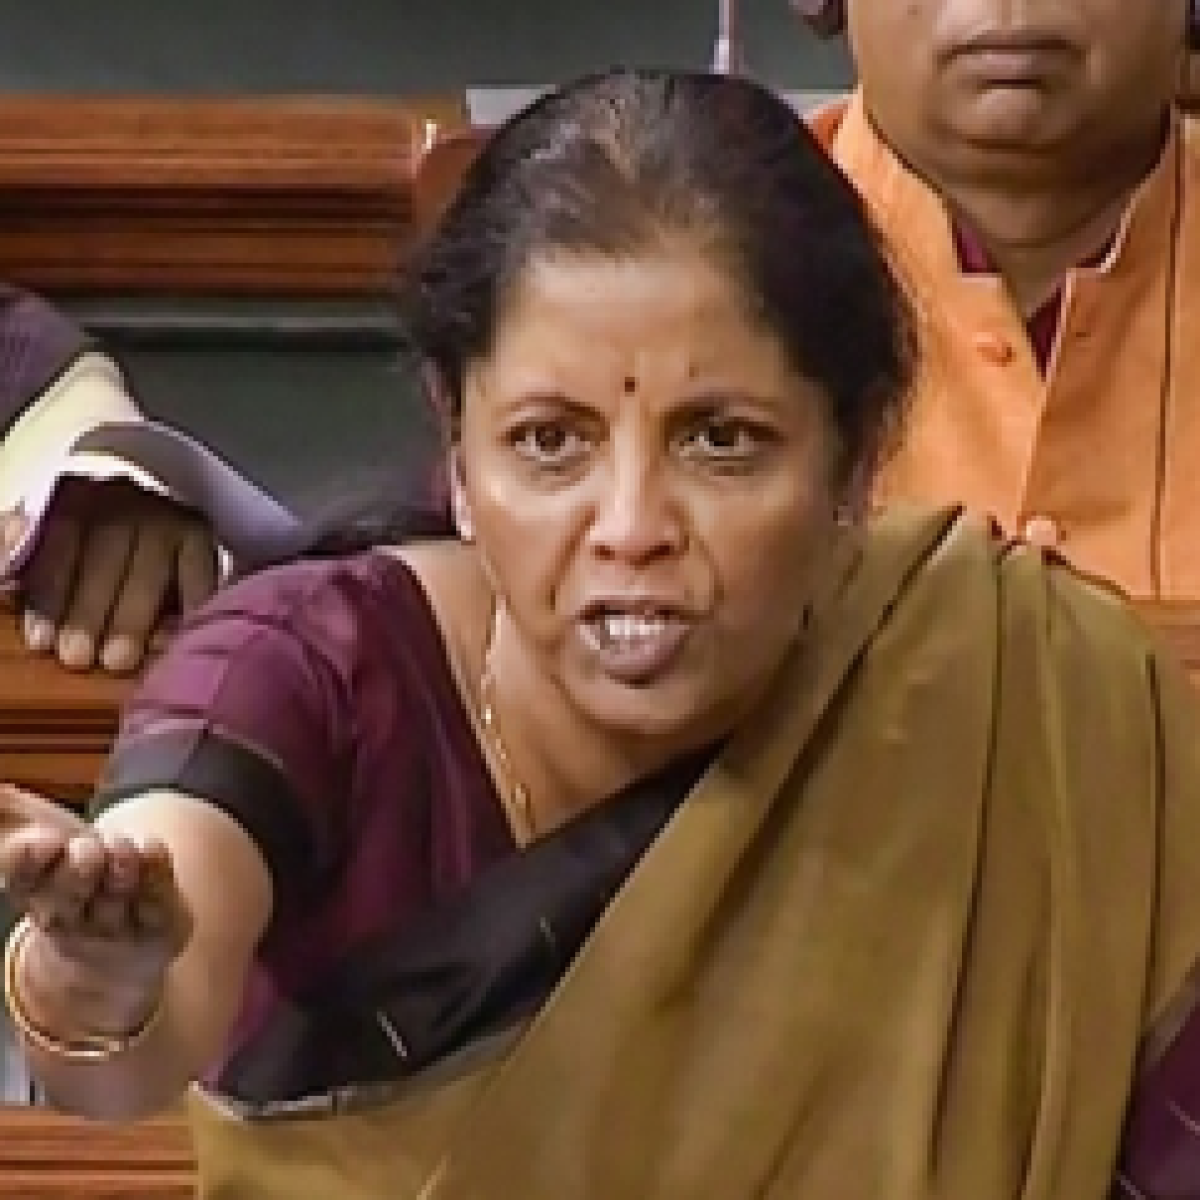 Wilful defaulters were beneficiaries of 'phone banking' under UPA regime, says Nirmala Sitharaman